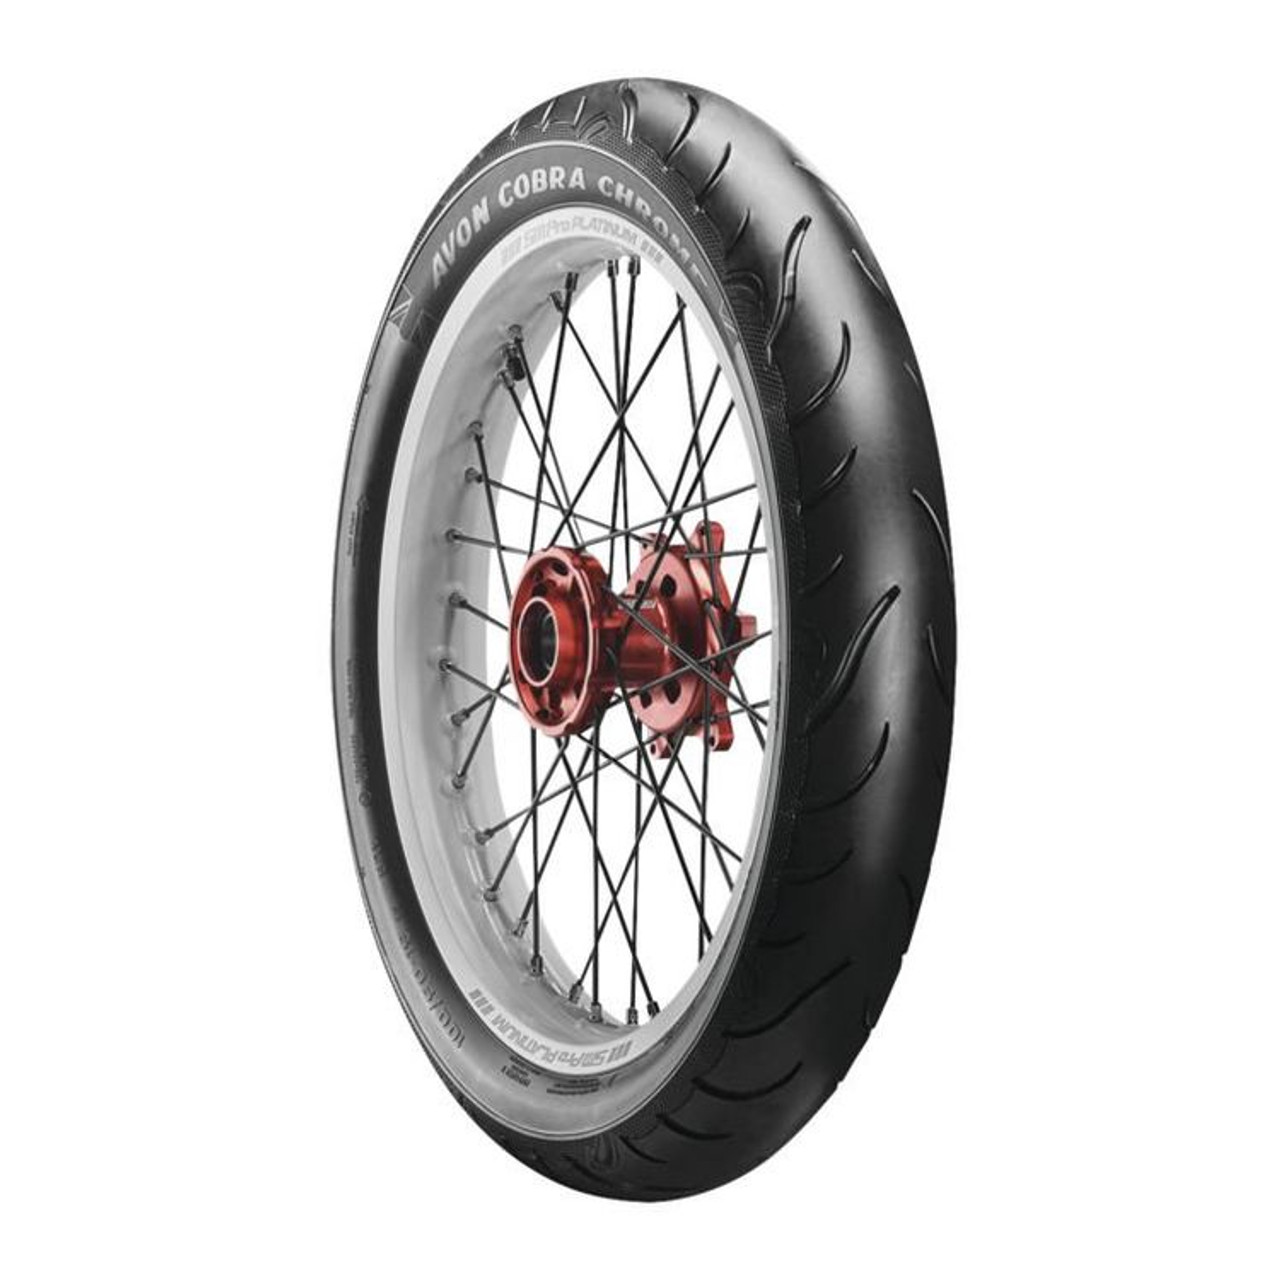 Avon Motorcycle Tires >> Avon Cobra Chrome Touring Tires